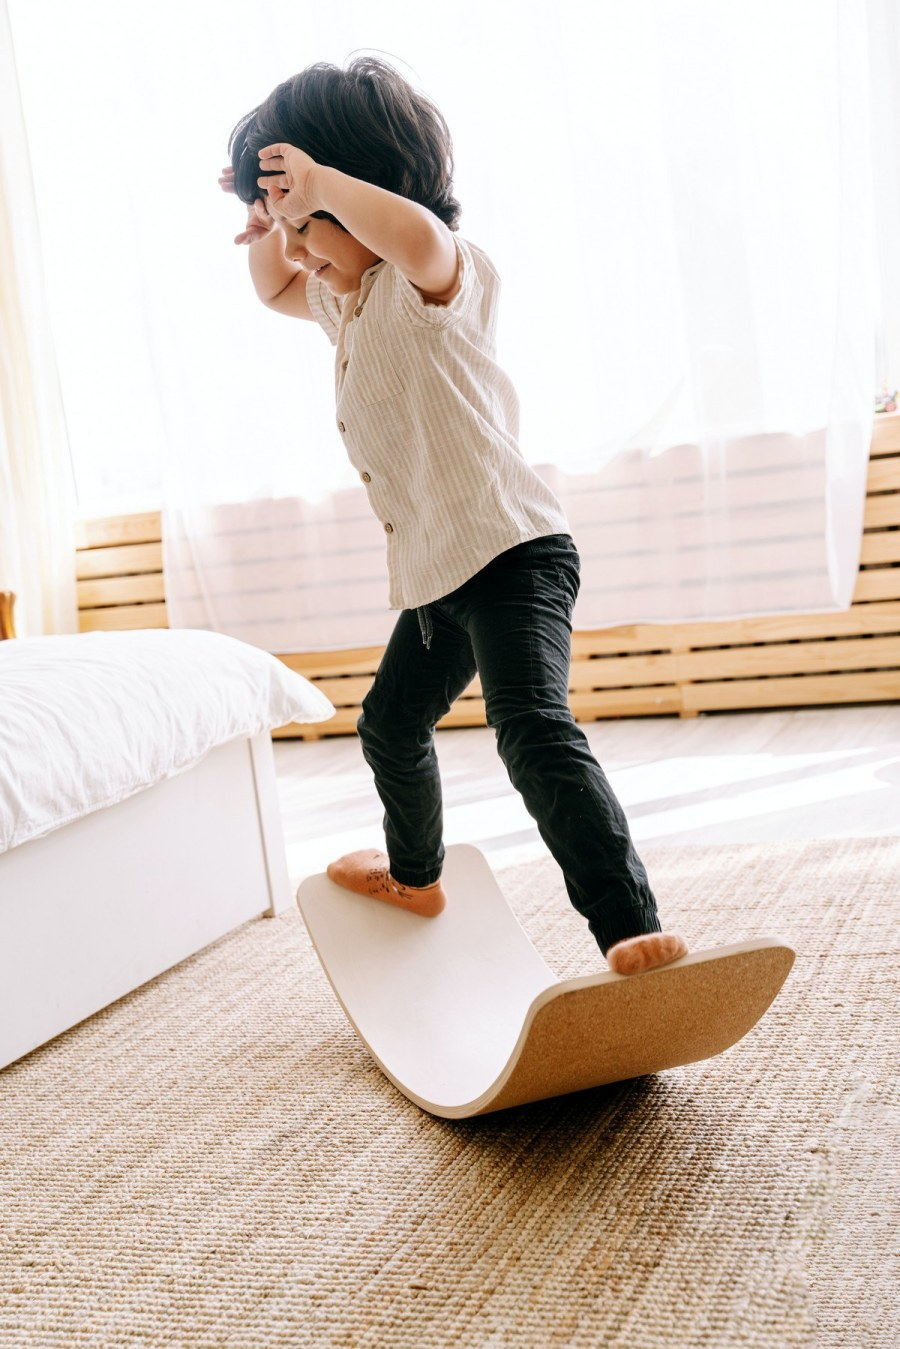 Ultimately, children's balance boards are meant for fun! Wooden balance boards are not to be confused with training balance boards (which work core muscles as you balance), they are meant to encourage physical, open-ended play between kids.